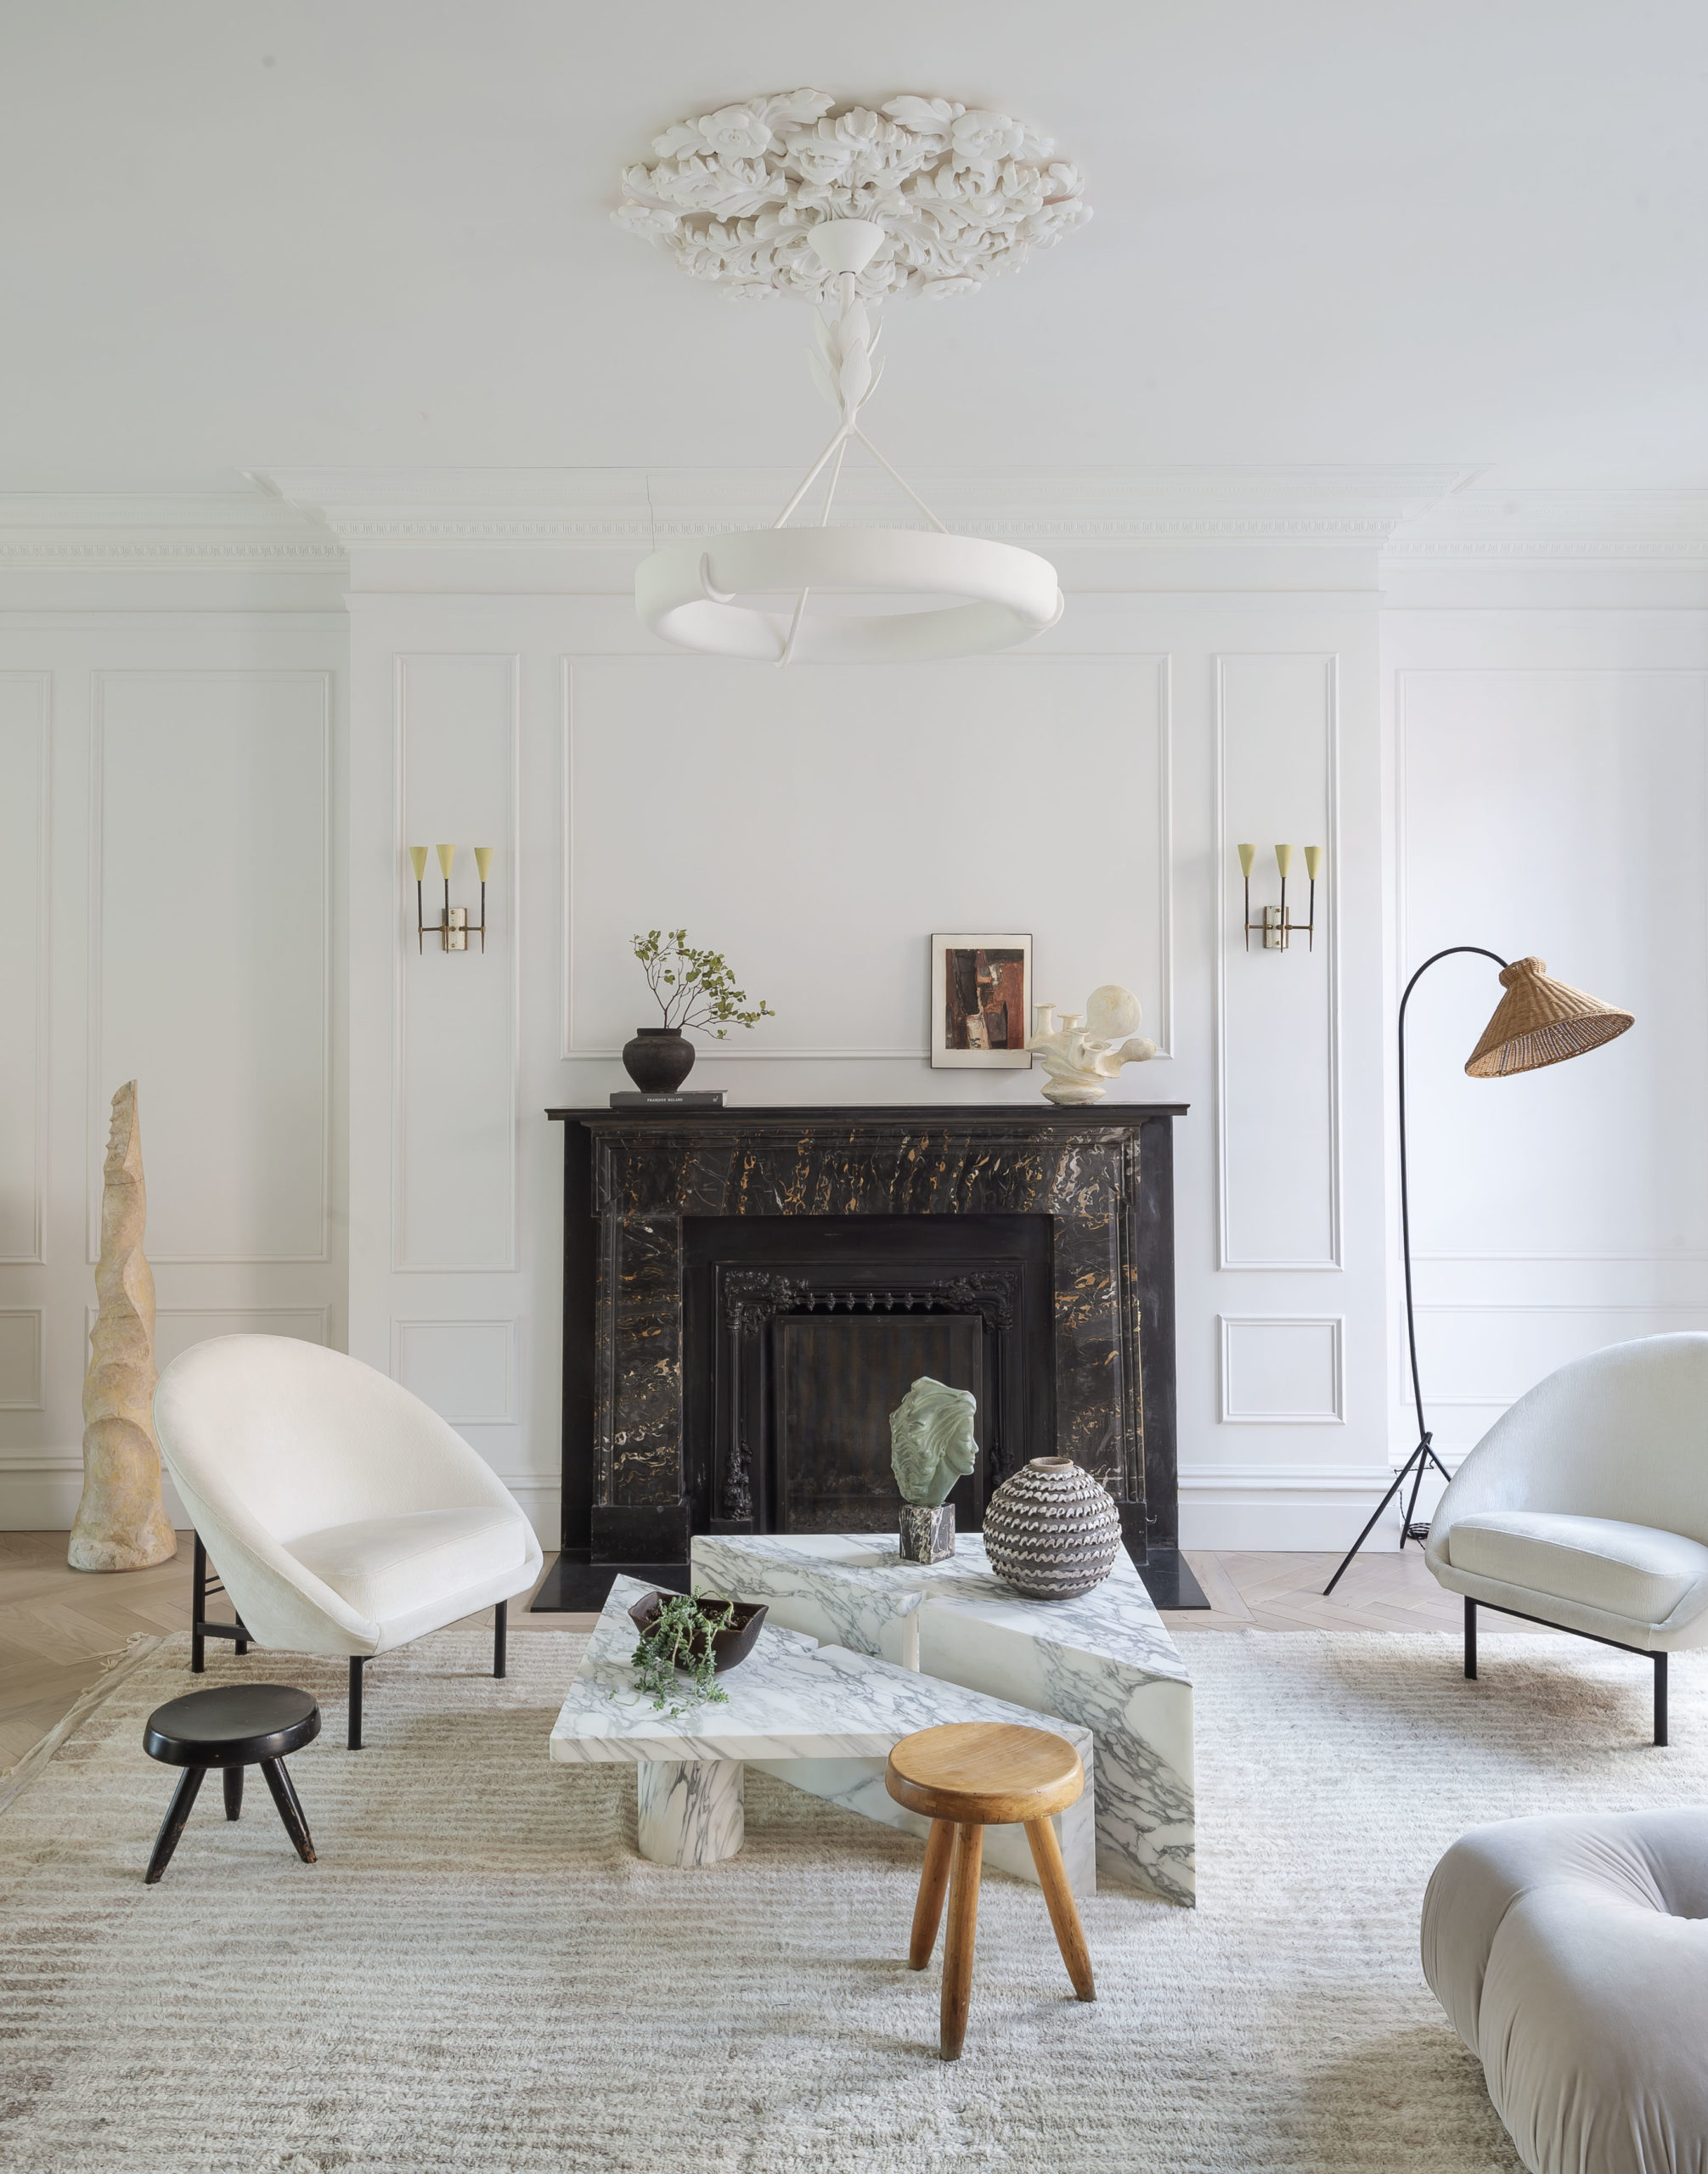 Ask Athena: How to Style a Room